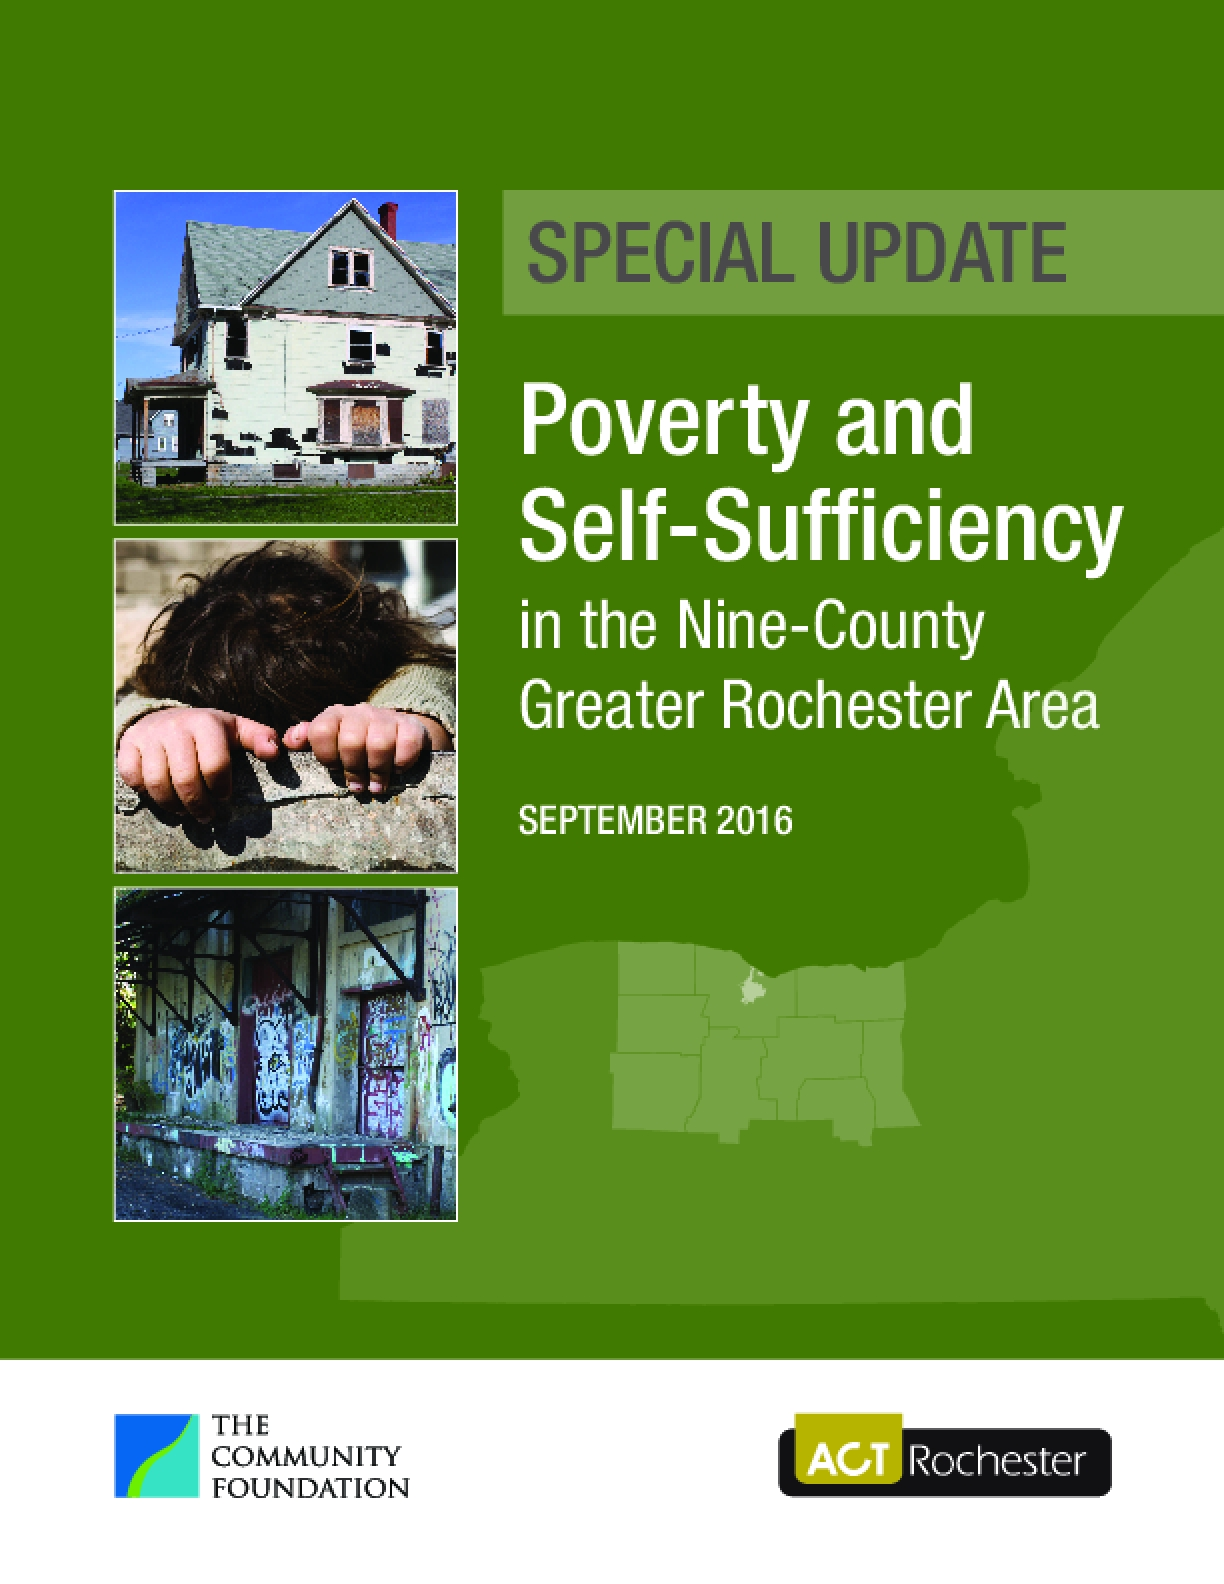 Poverty and Self-Sufficiency in the Nine-County Greater Rochester Area